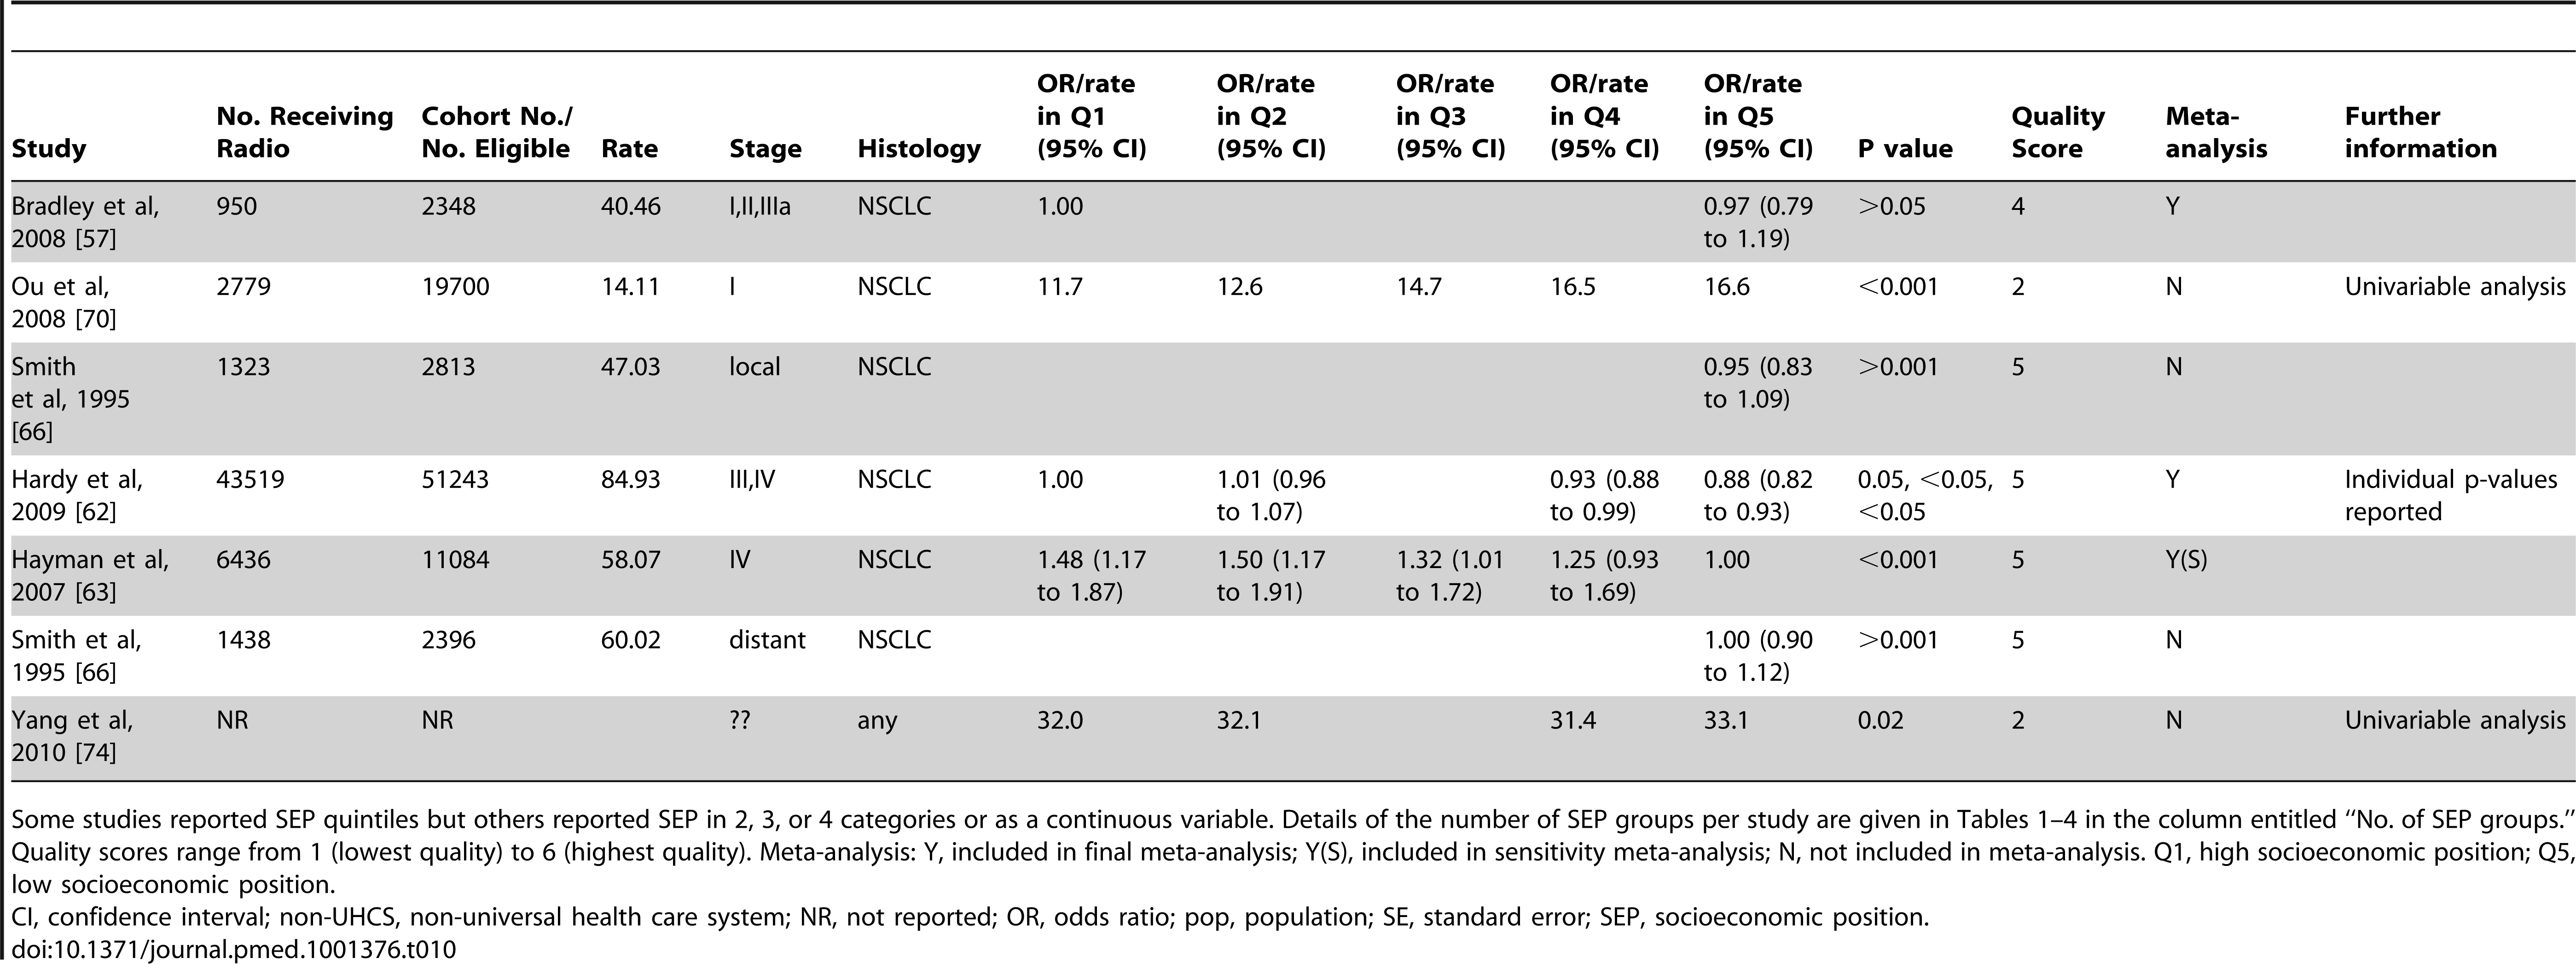 Likelihood of receipt of radiotherapy by SEP group (non-universal health care systems).